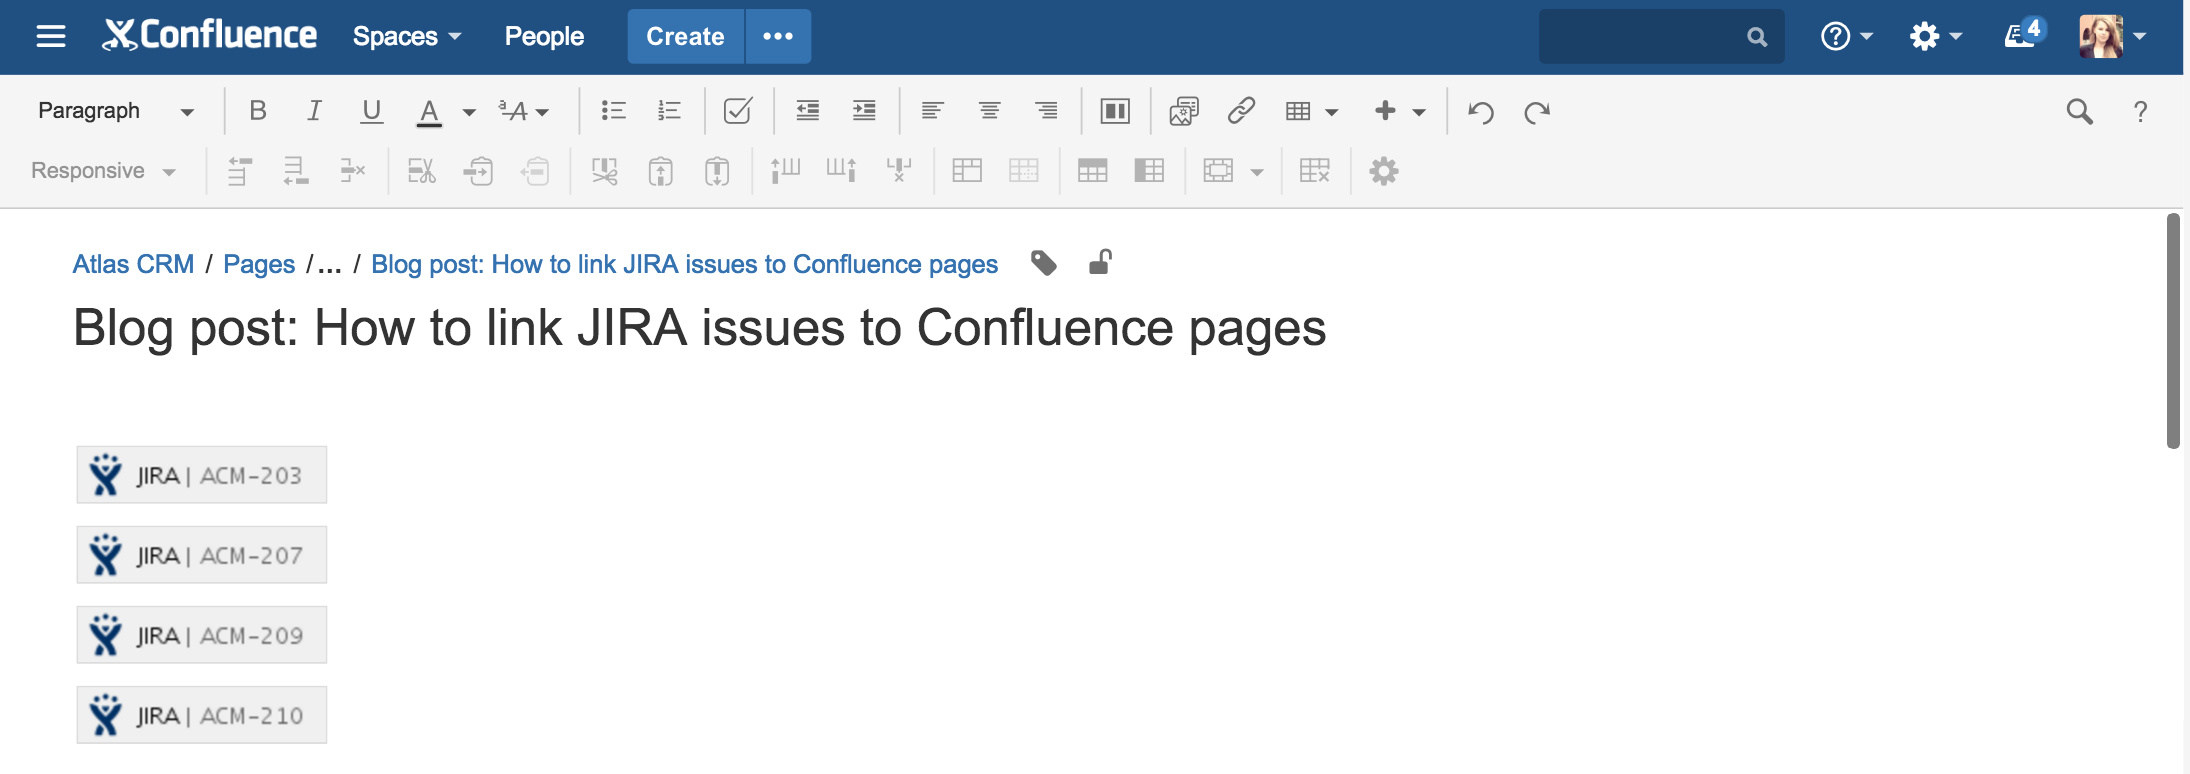 How To Link Jira Issues To Confluence Pages